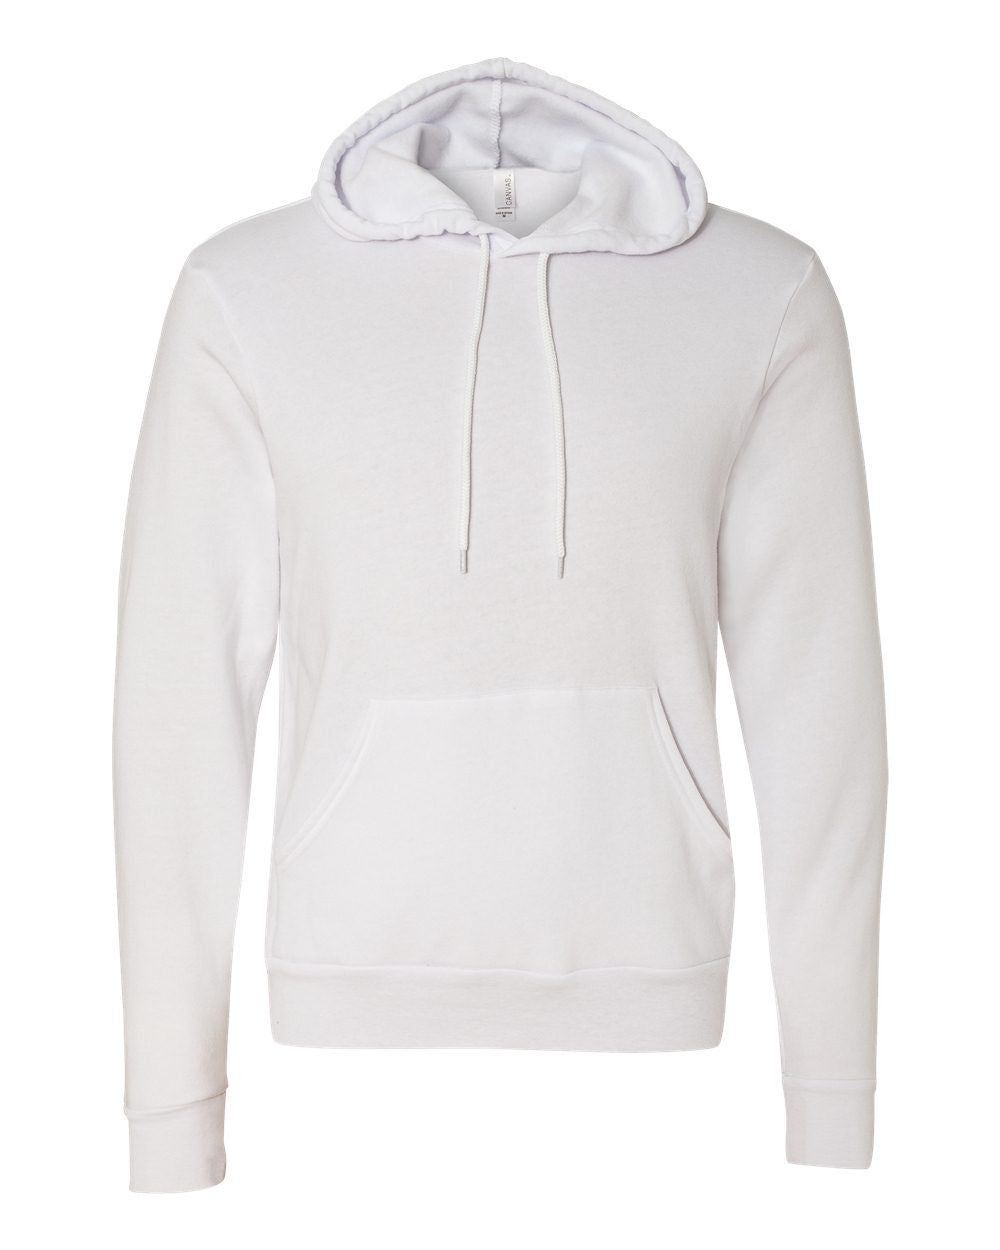 3719 - Unisex Hooded Pullover Sweatshirt